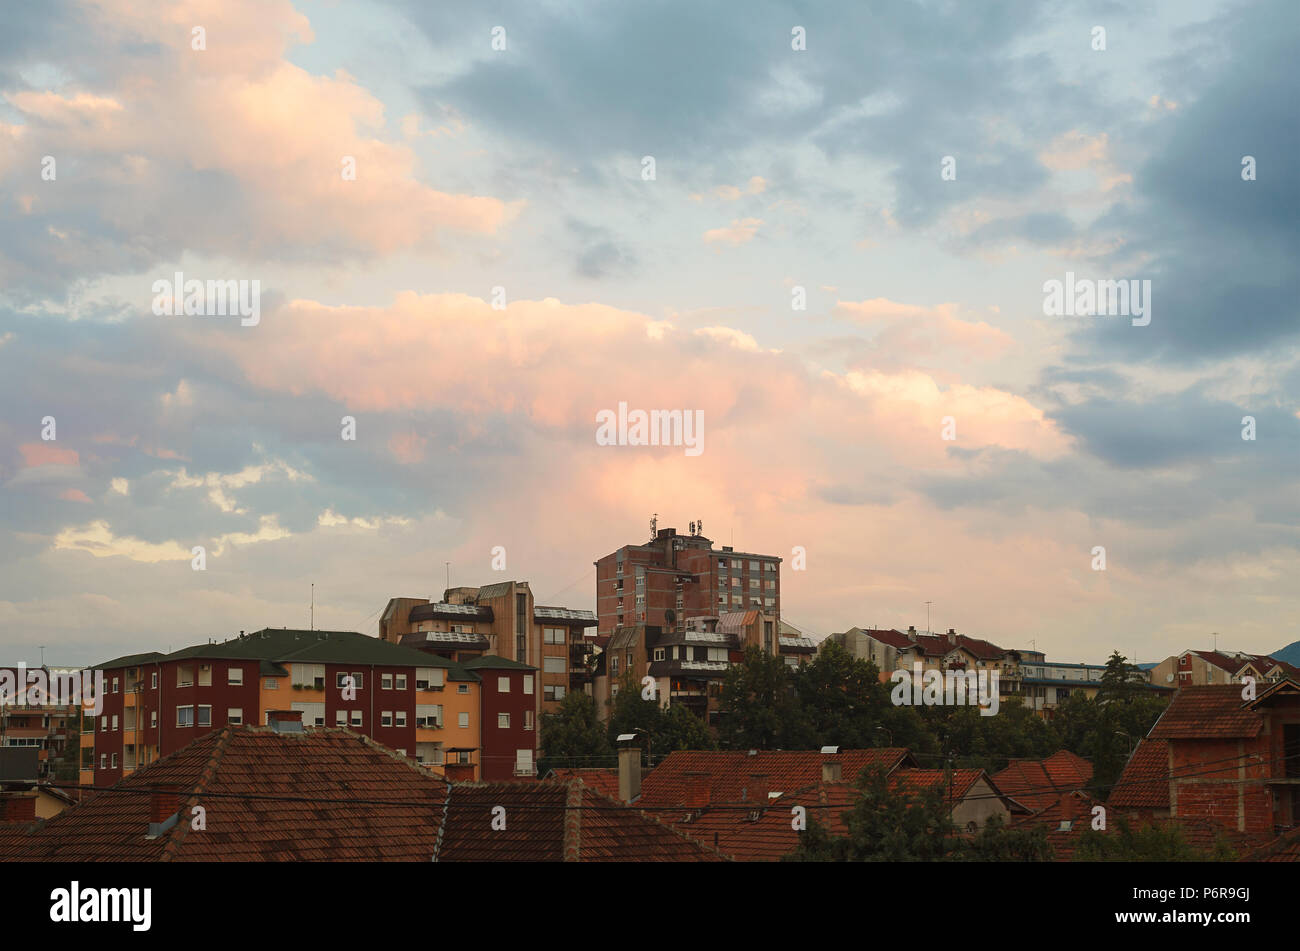 Interesting and colorful sunset at one ordinary day in a small Balkan town. - Stock Image